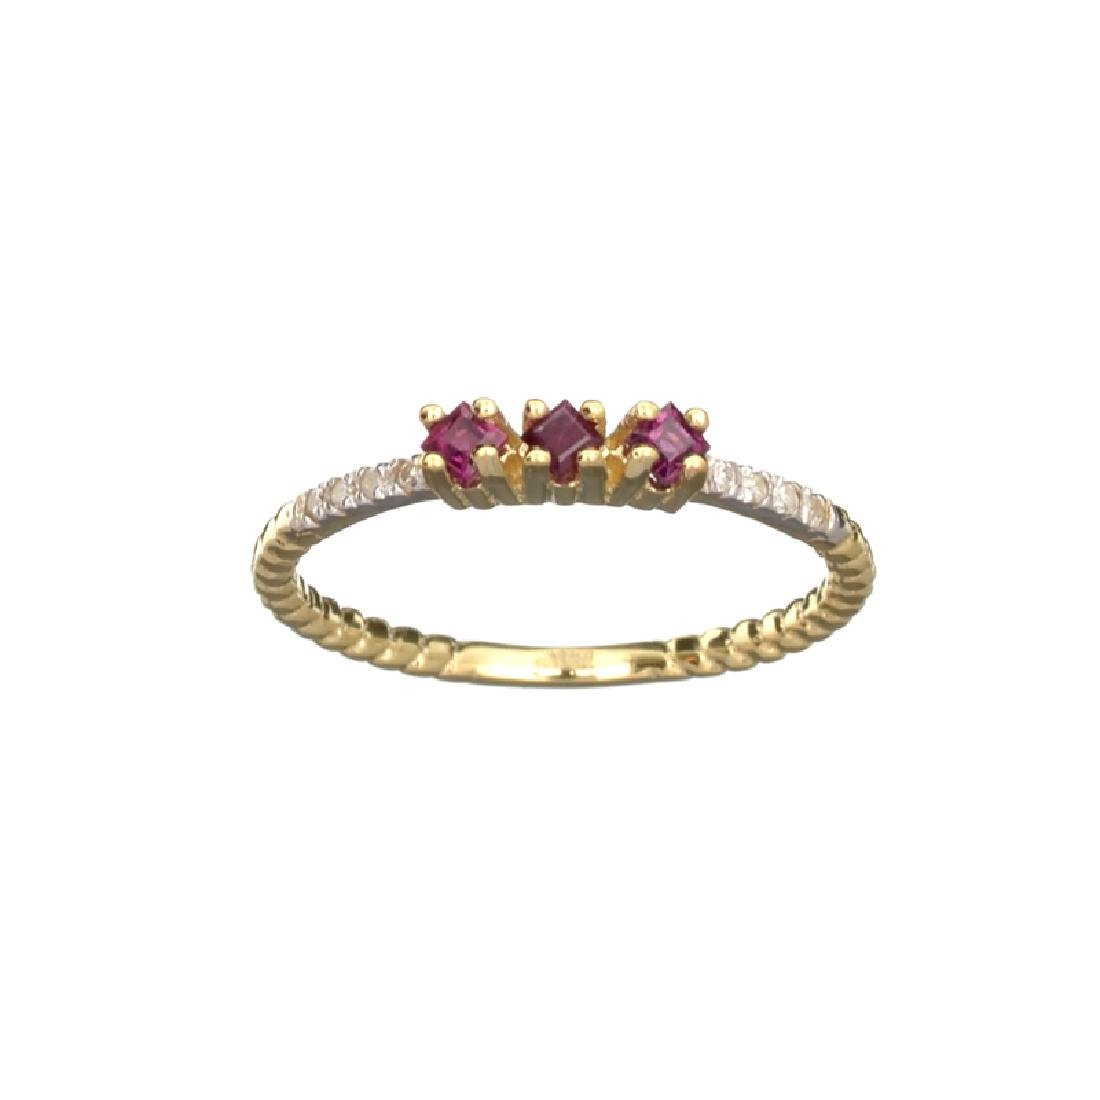 APP: 0.5k Fine Jewelry 14 KT Gold, 0.19CT Red Ruby And